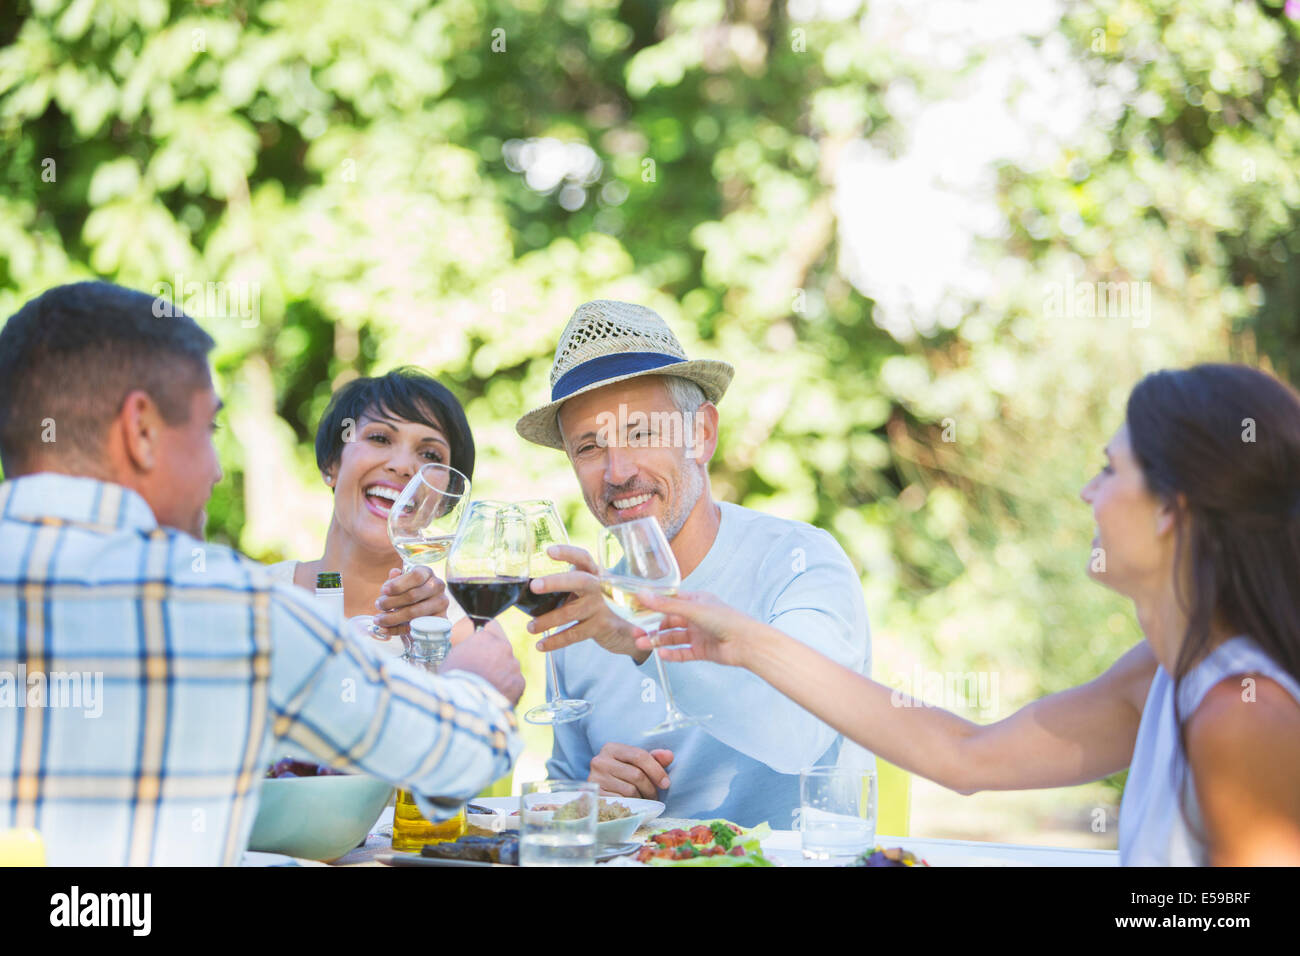 Friends toasting each other at table outdoors Photo Stock